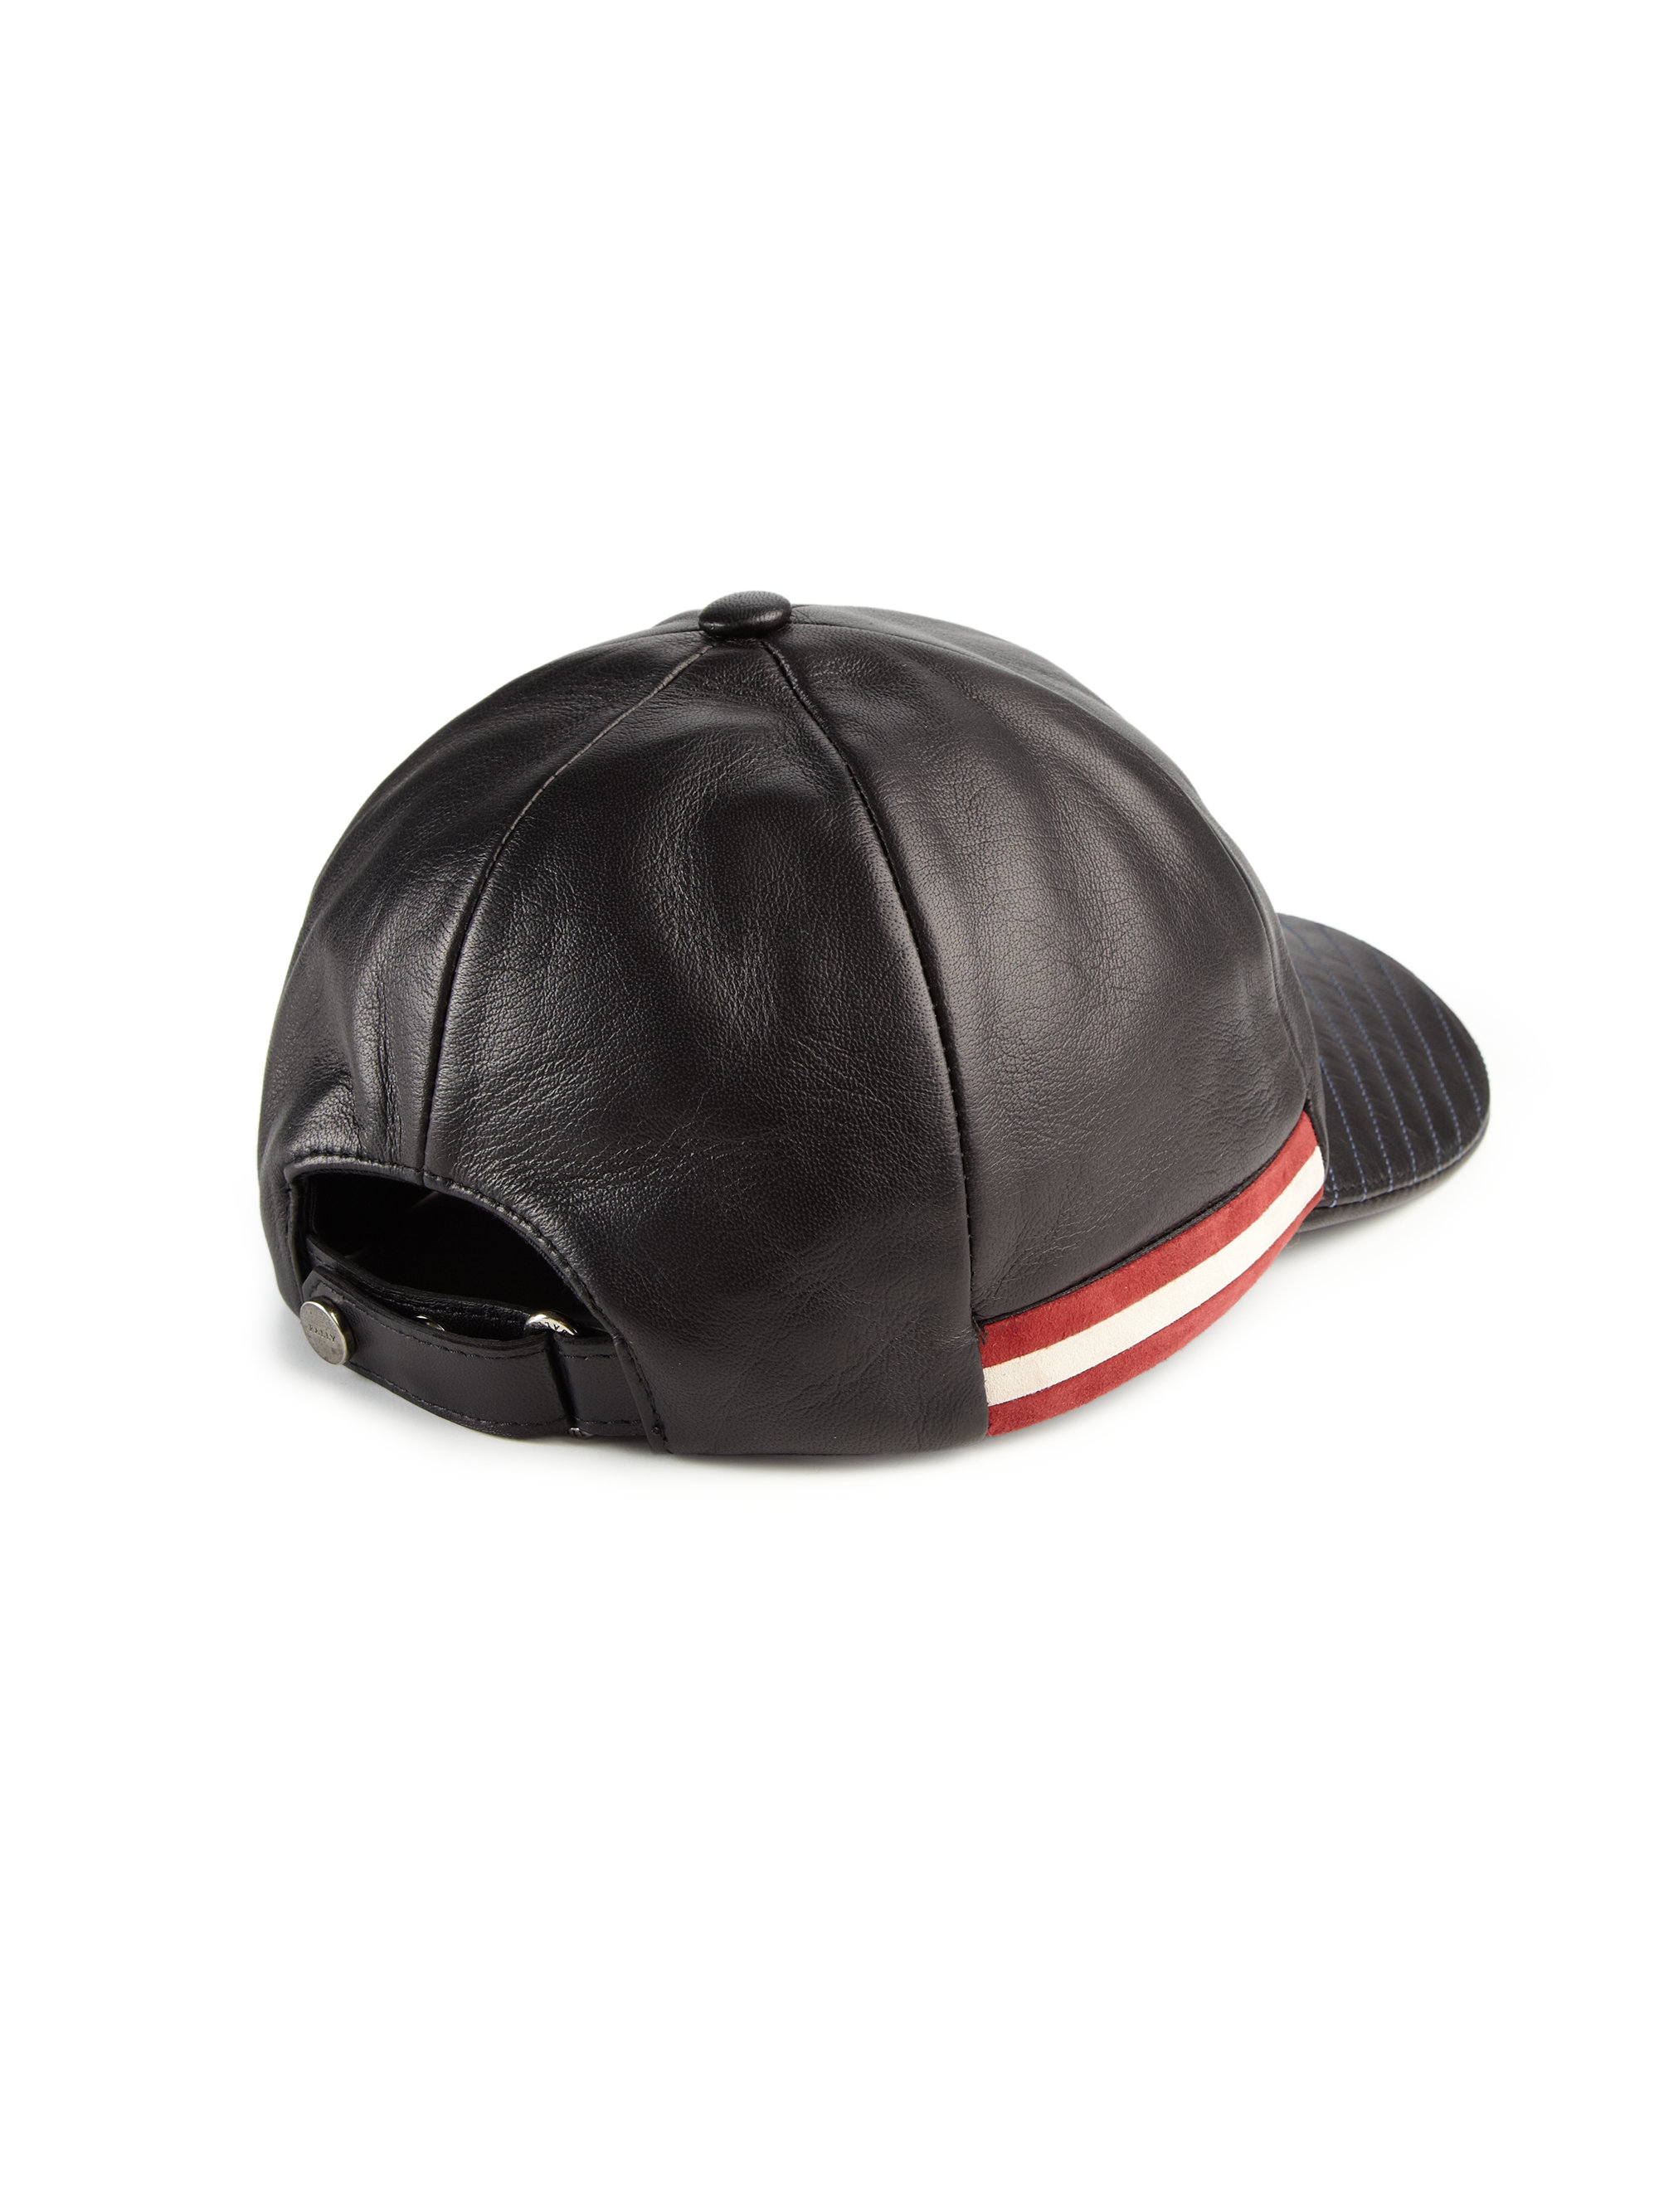 Lyst Bally Leather Baseball Cap In Black For Men